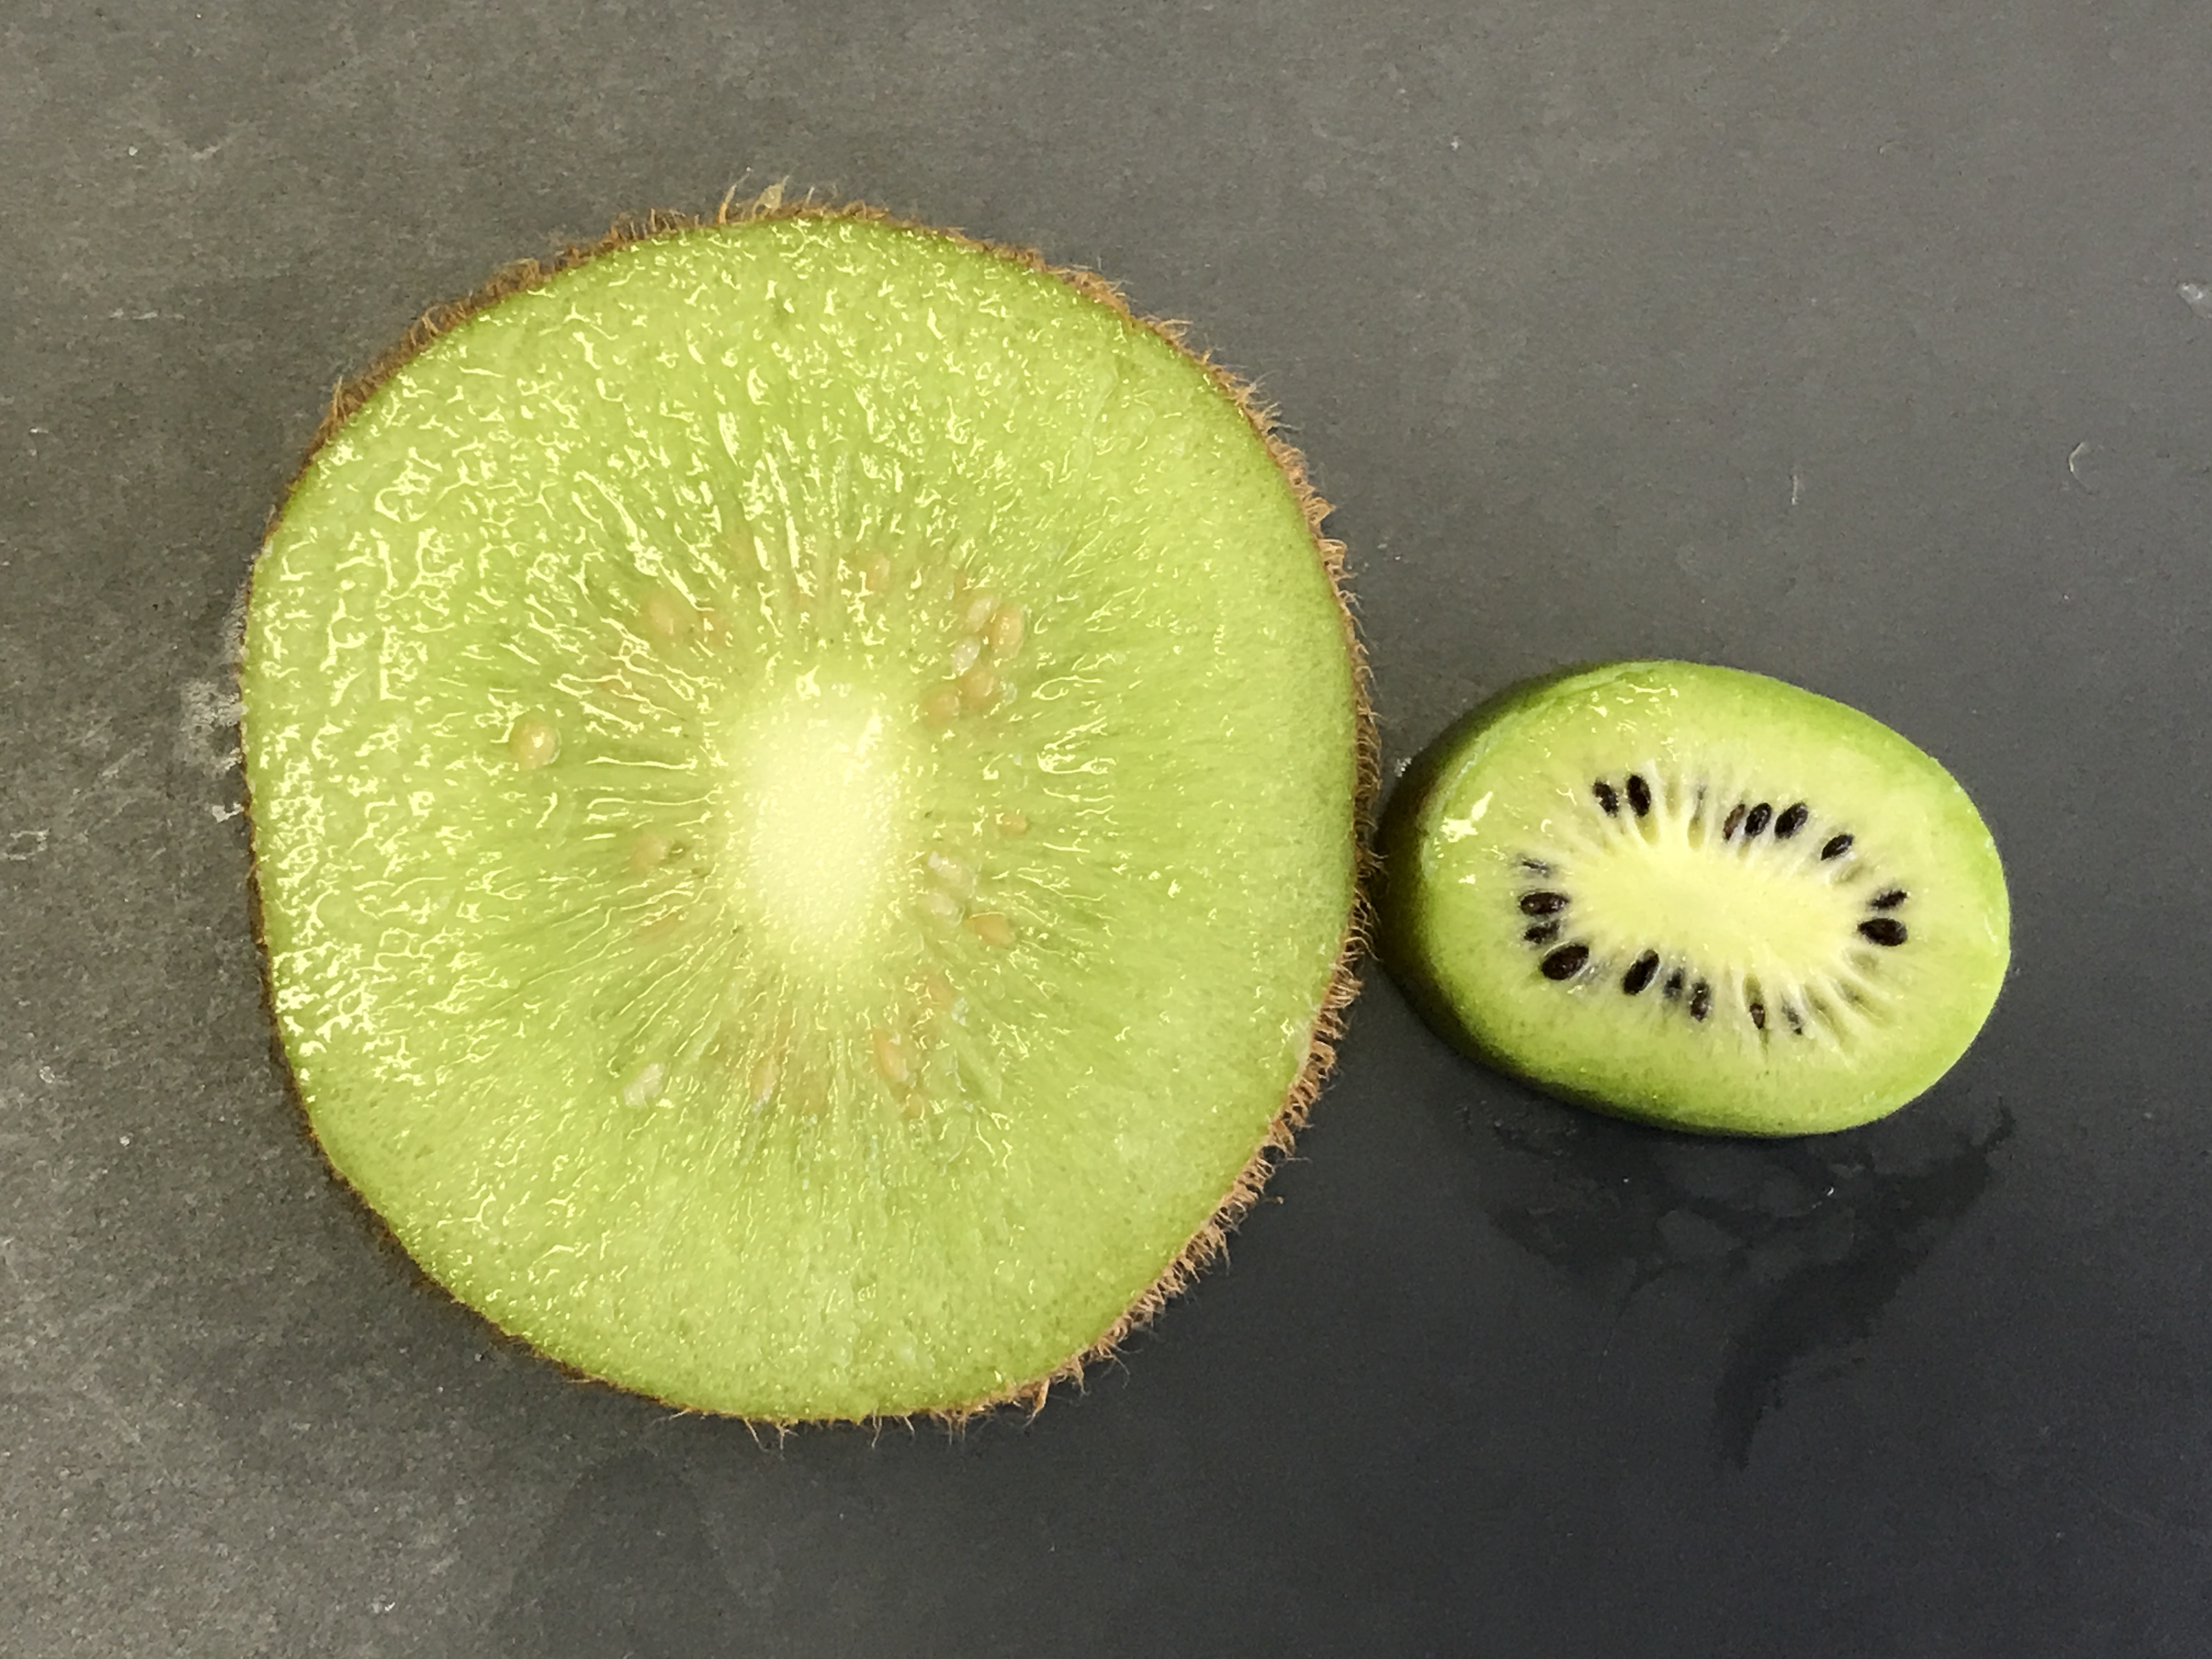 Large kiwifruit at left with brown seeds, small kiwiberry at right with black seeds